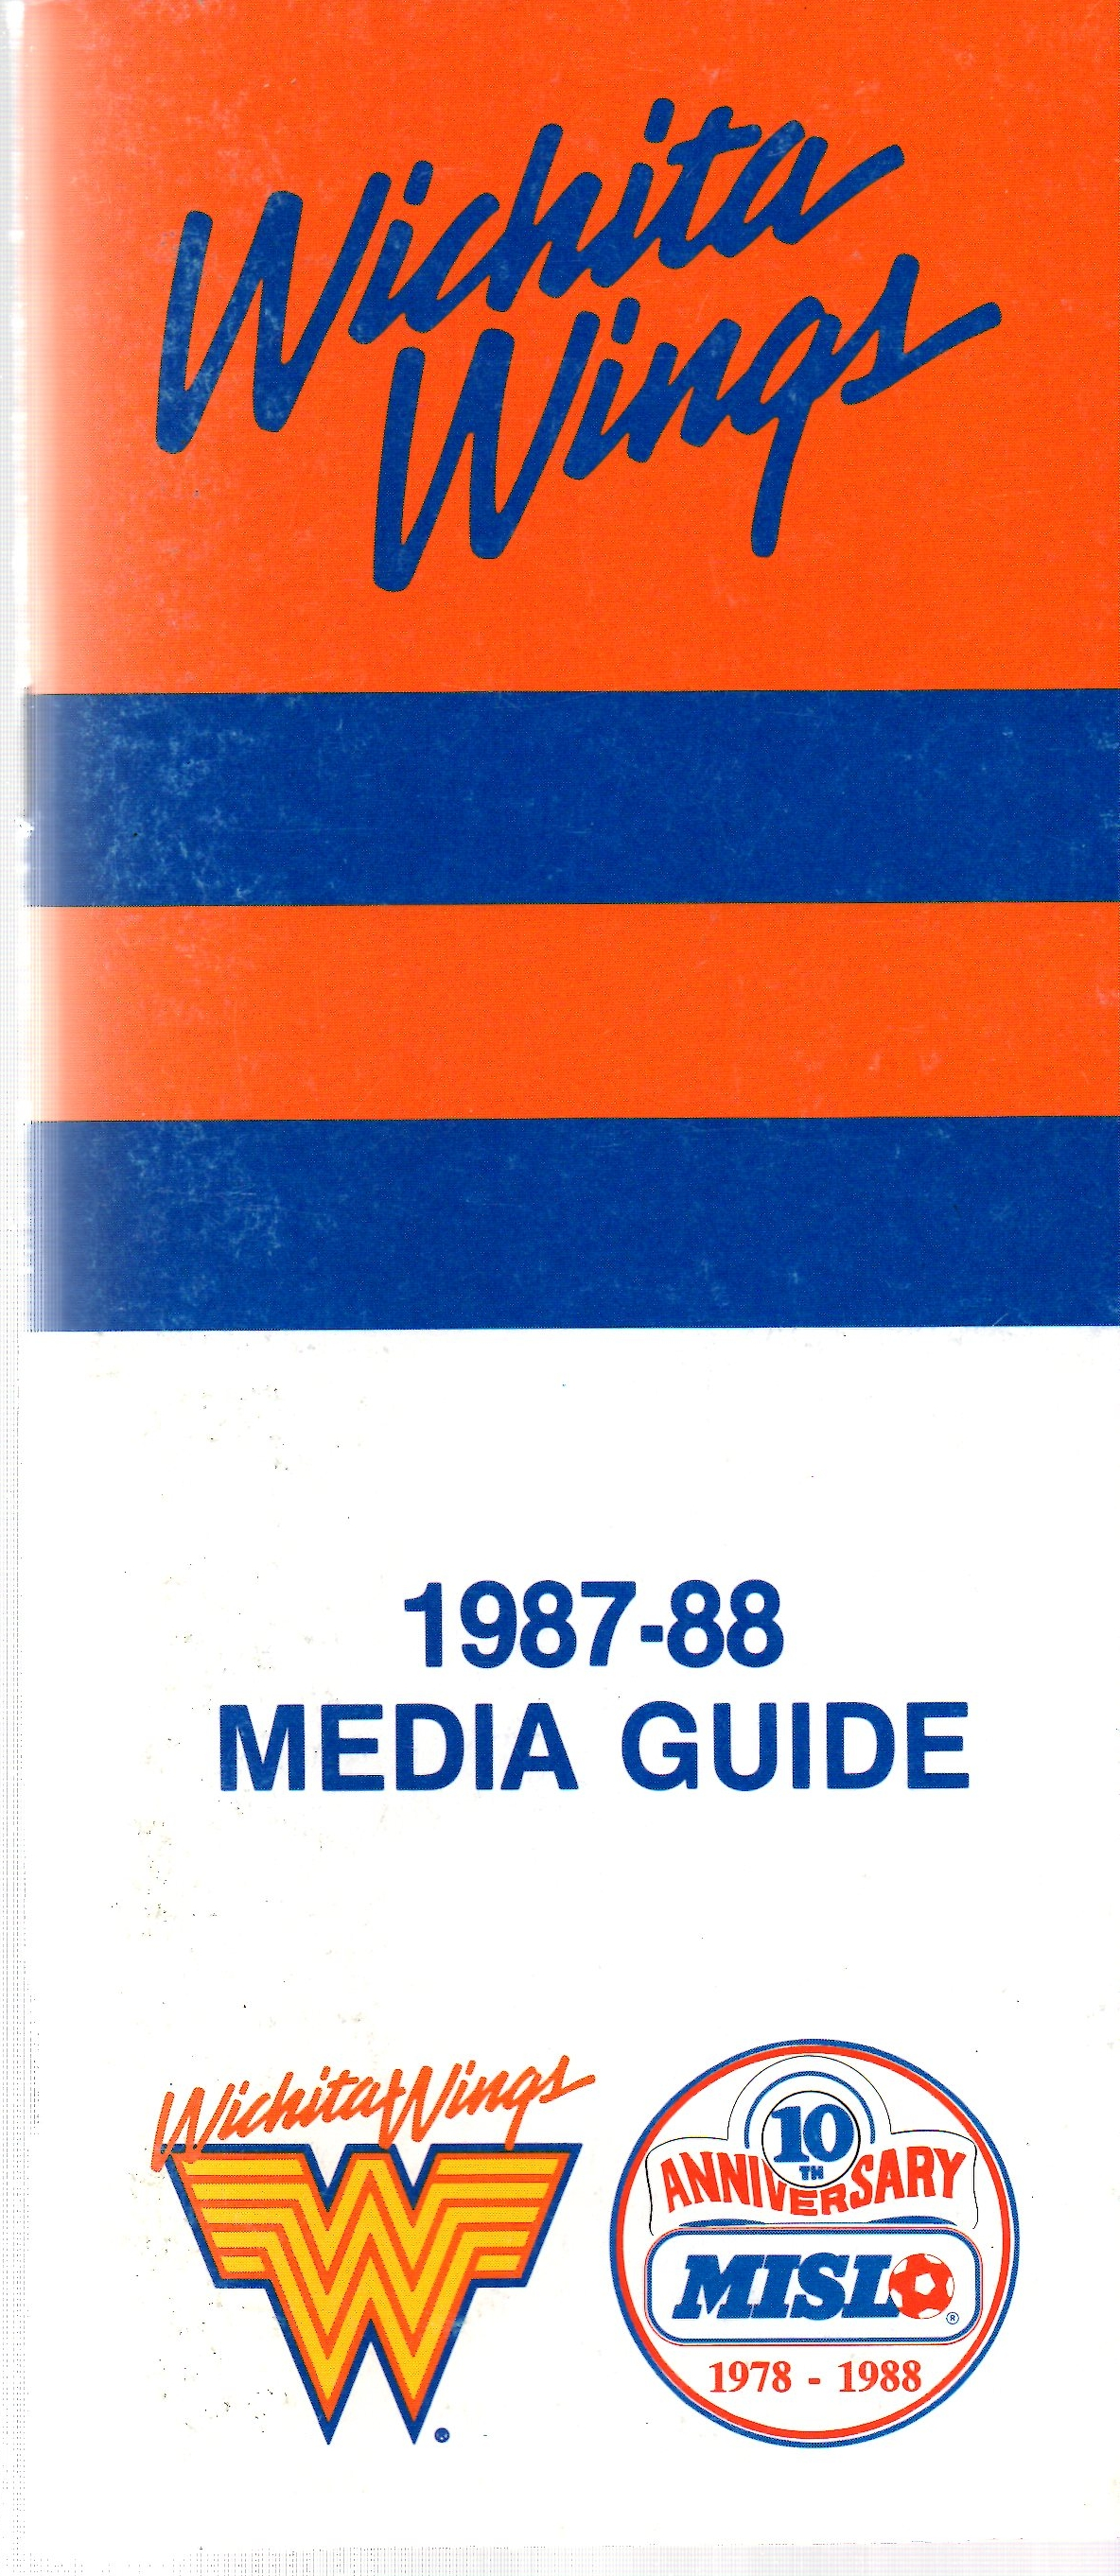 WichitaWings1987-88Media001.jpg